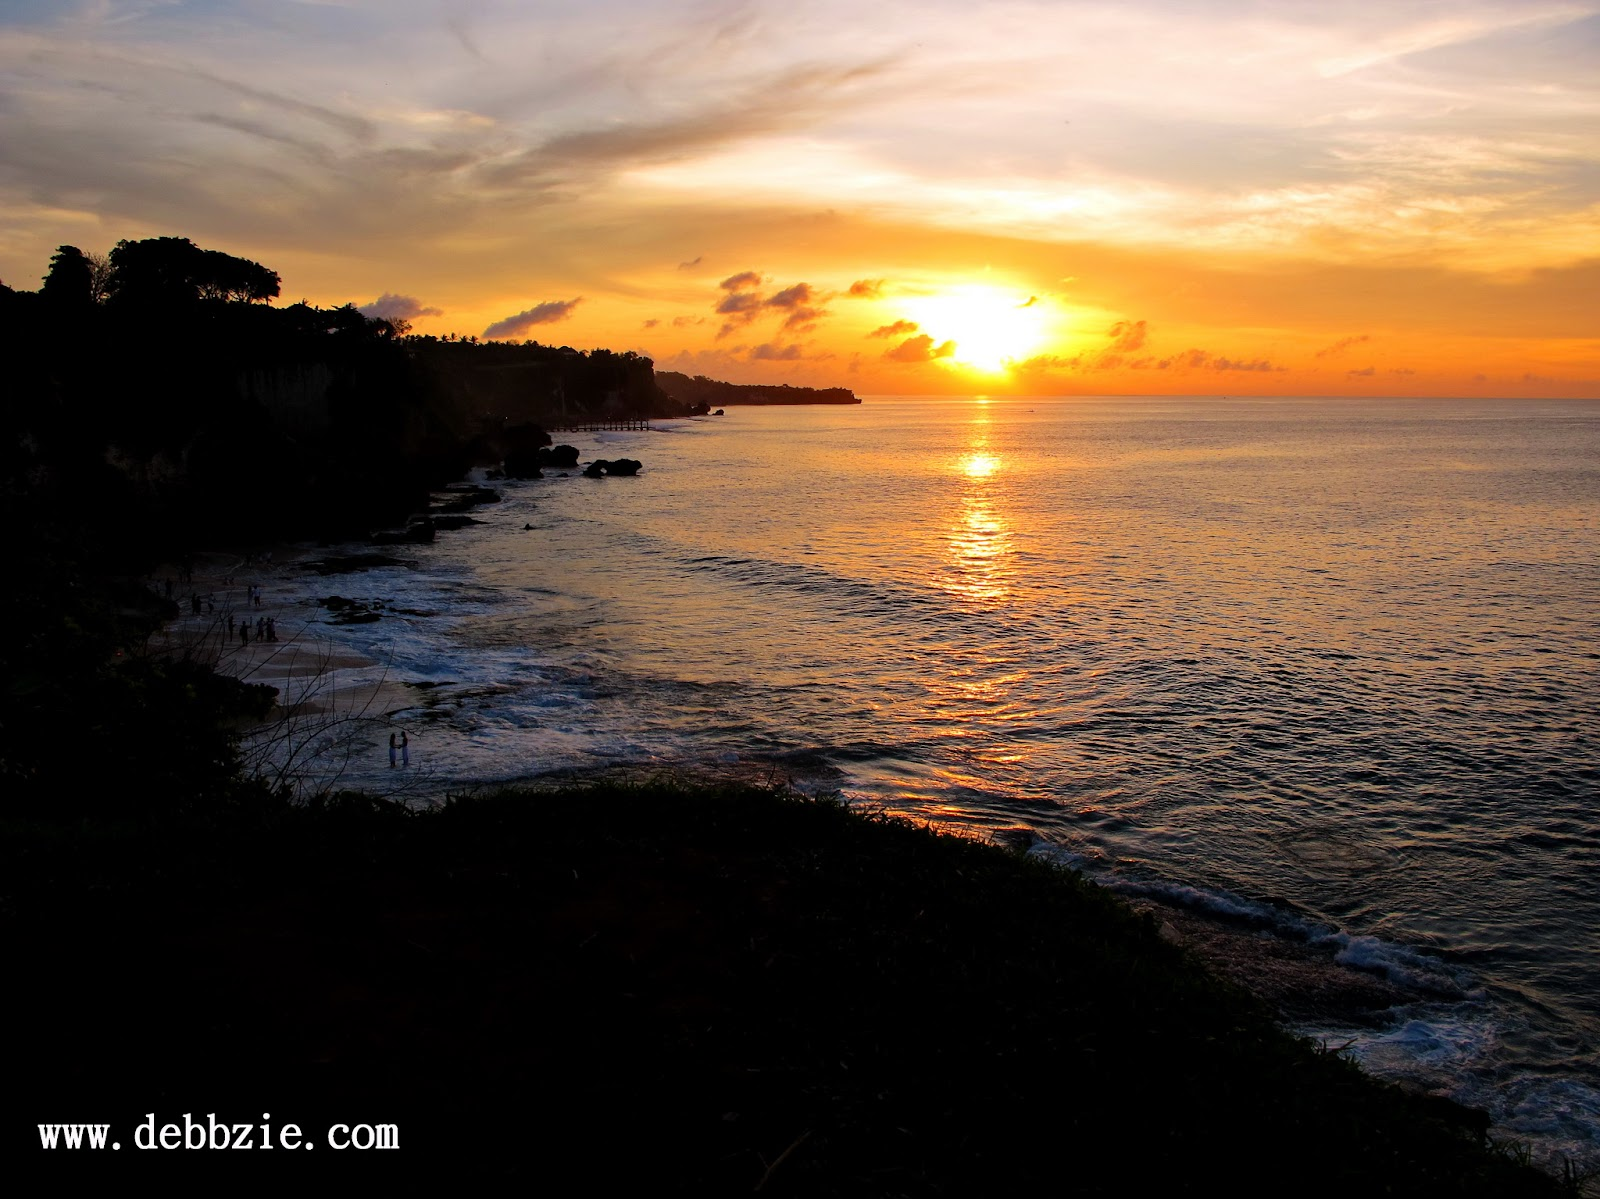 Indonesia: 15 Photos of Sunset in Bali